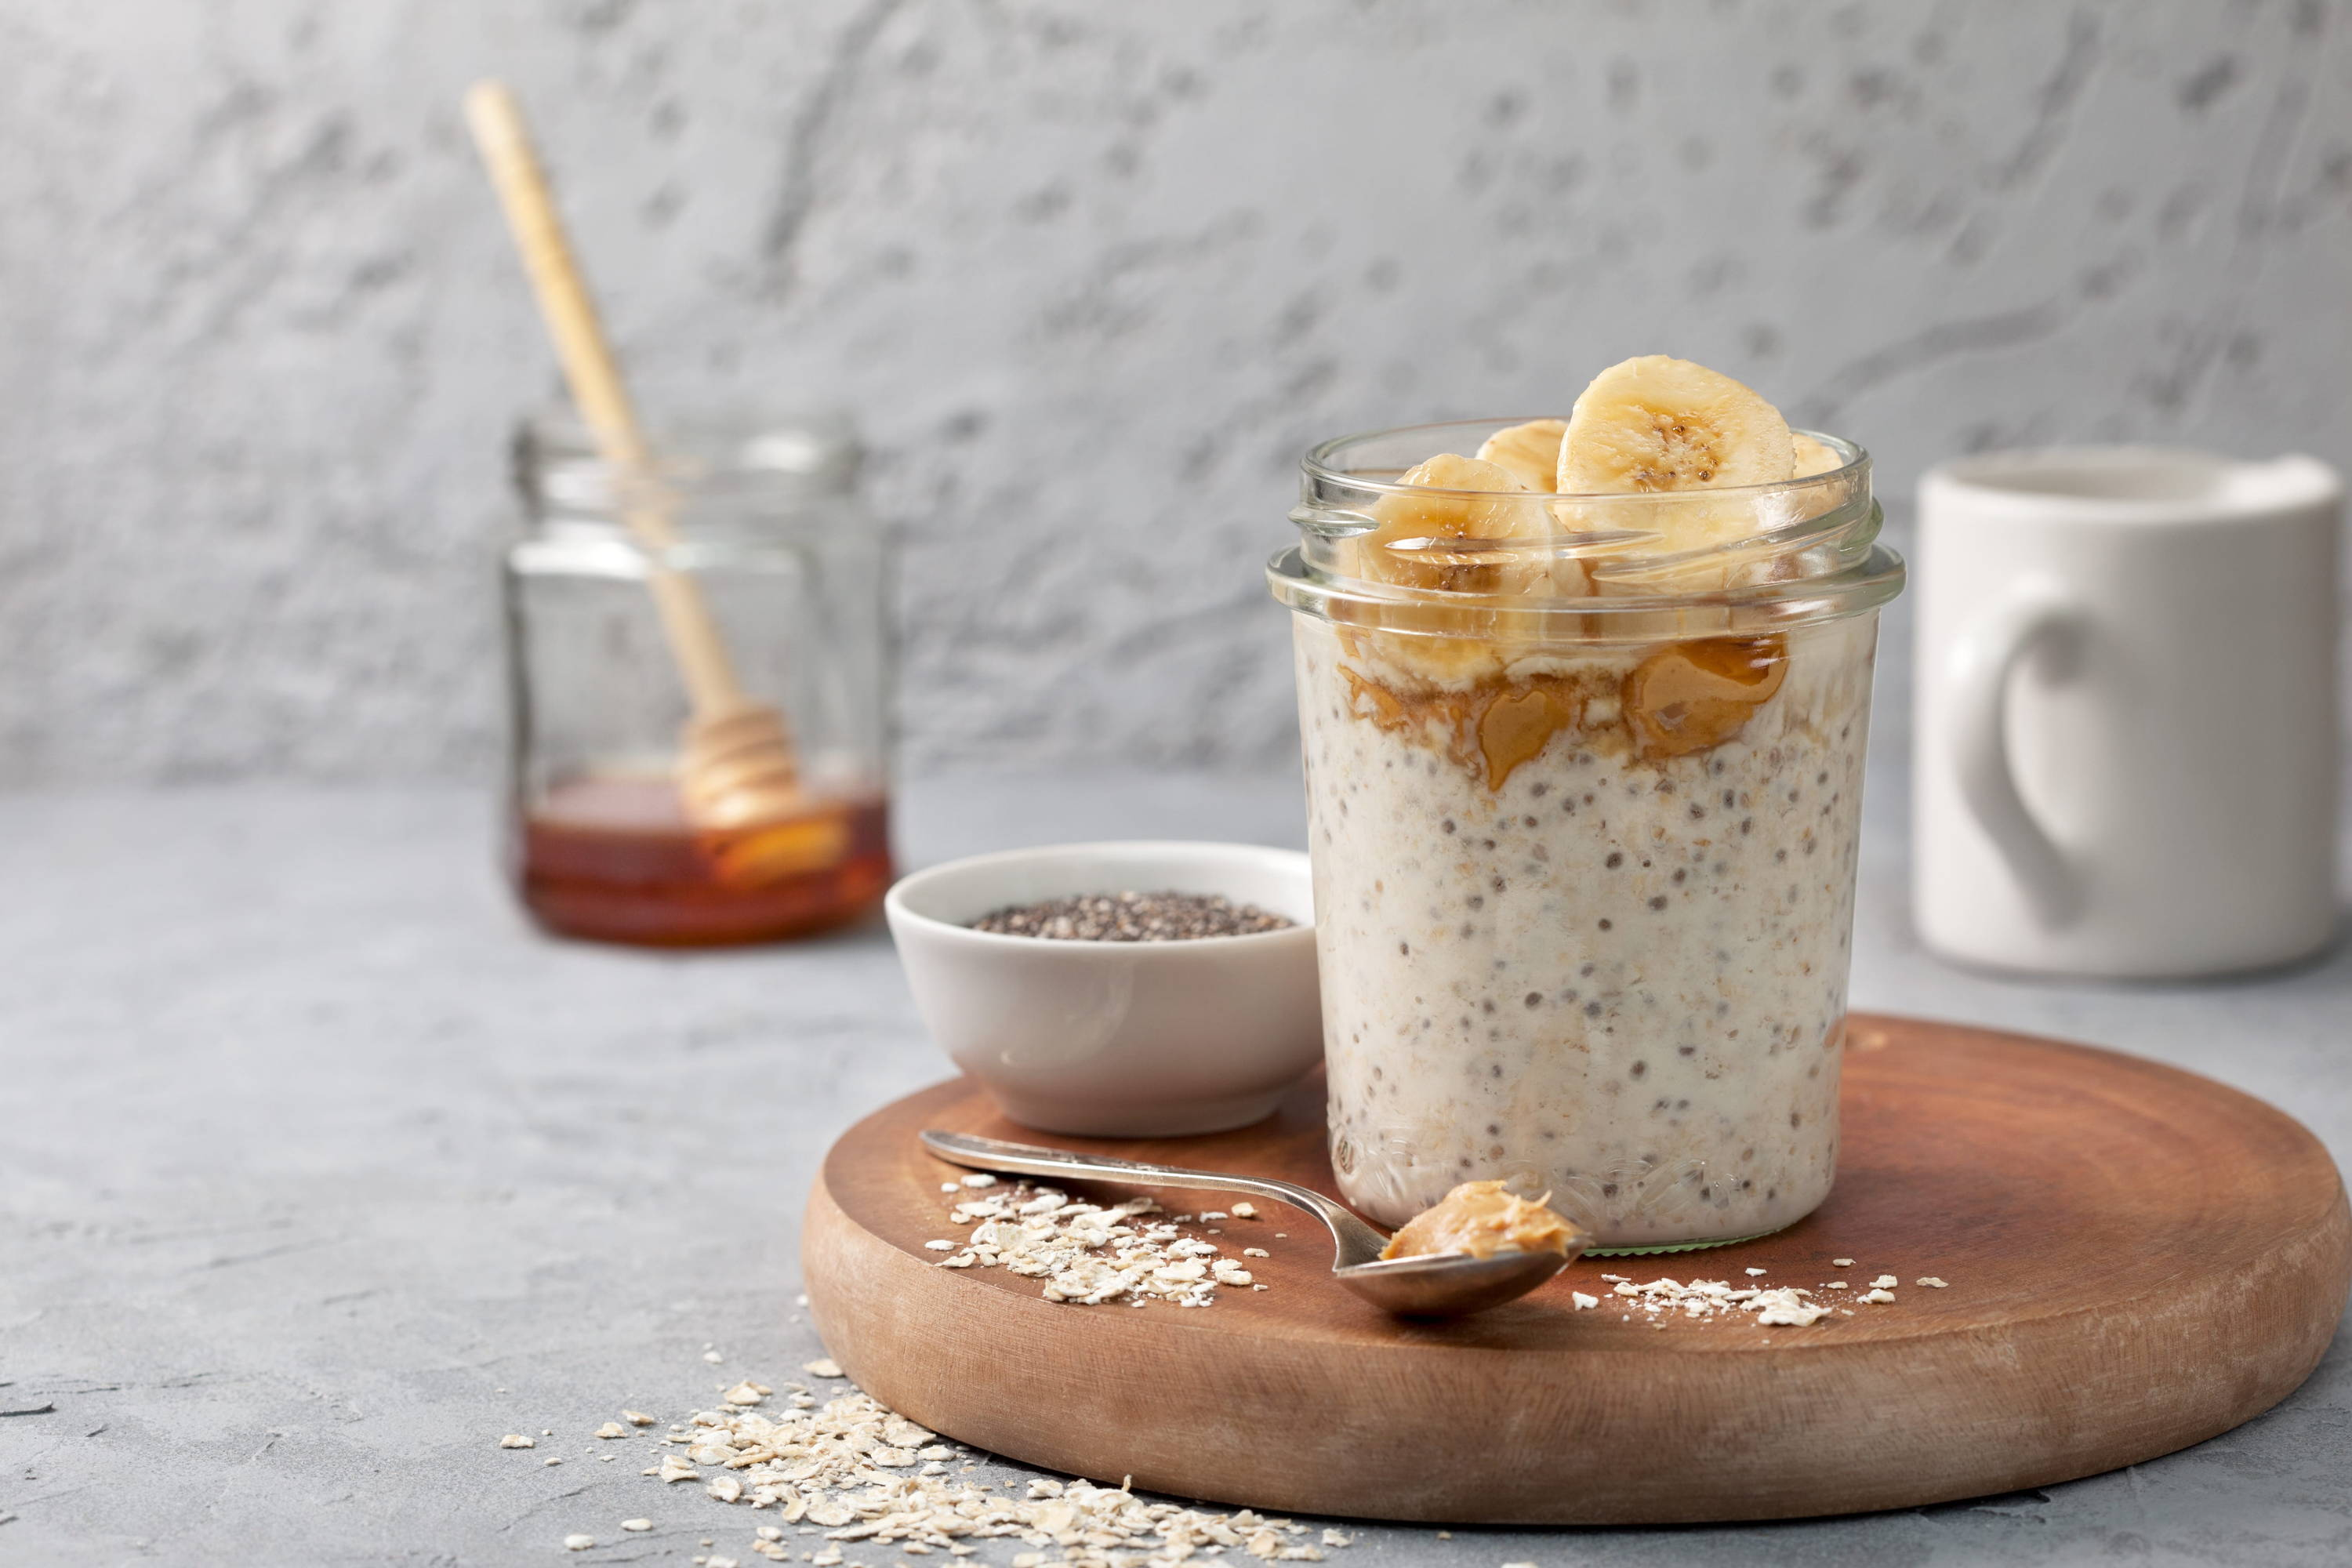 Healthy overnight oats in a glass jar with milk, honey, chia seeds and bananas to help build collagen